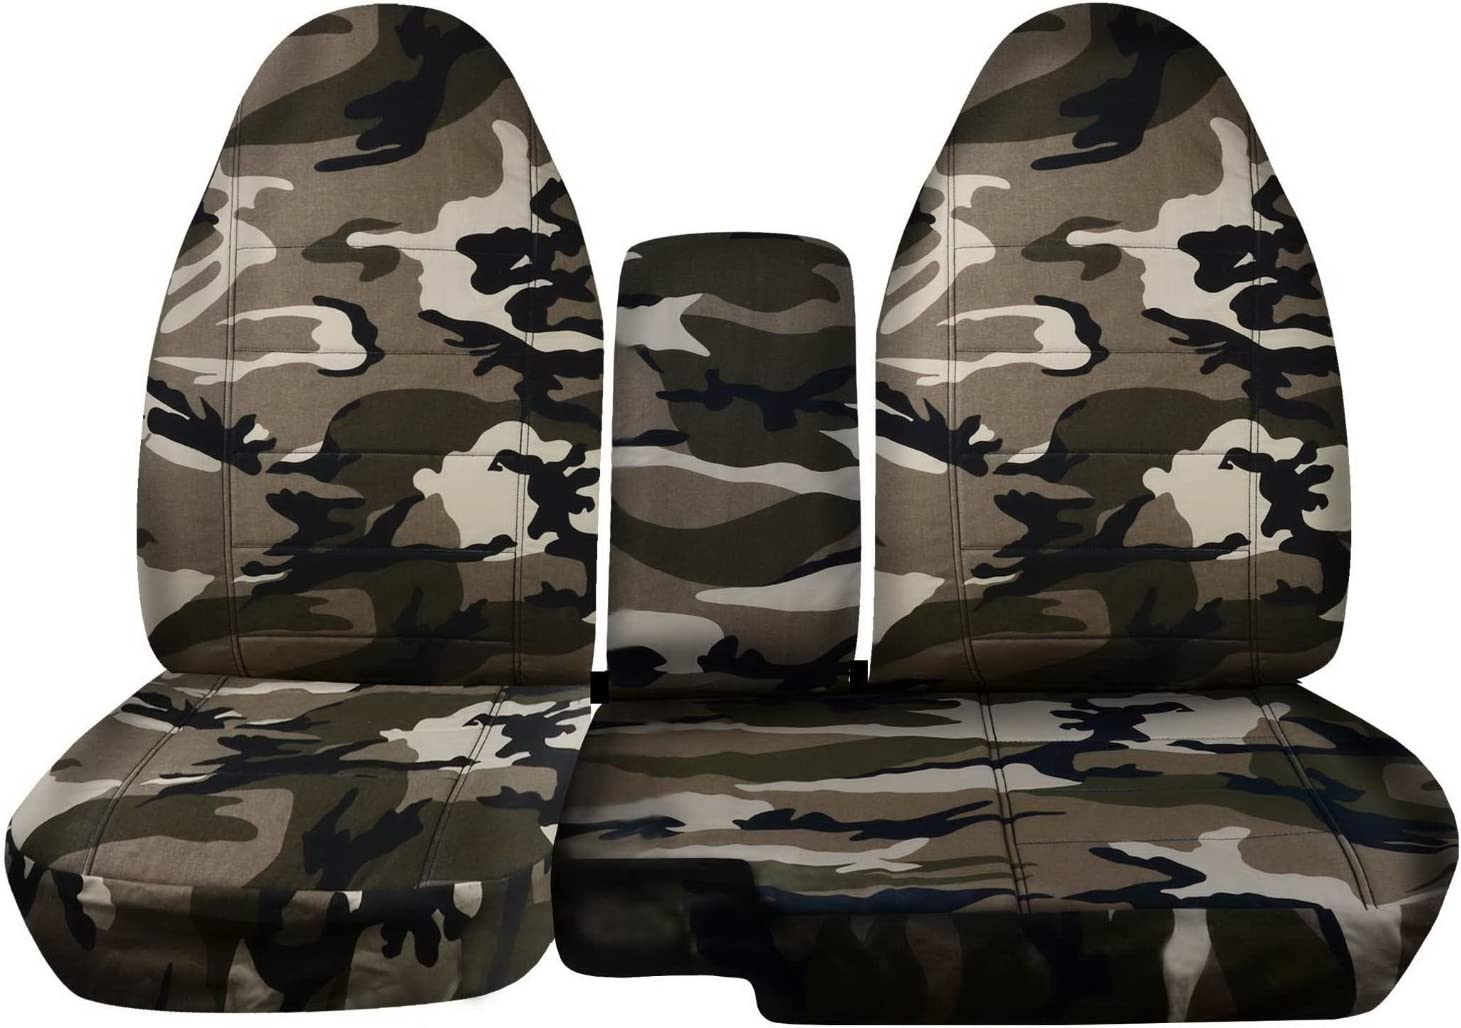 Tan Digital Camouflage 1999 2000 2001 2002 w//wo Cup Holders w Center Console//Armrest Cover 60//40 Split Bench Totally Covers Fits 1998-2003 Ford Ranger//Mazda B-Series Camo Truck Seat Covers